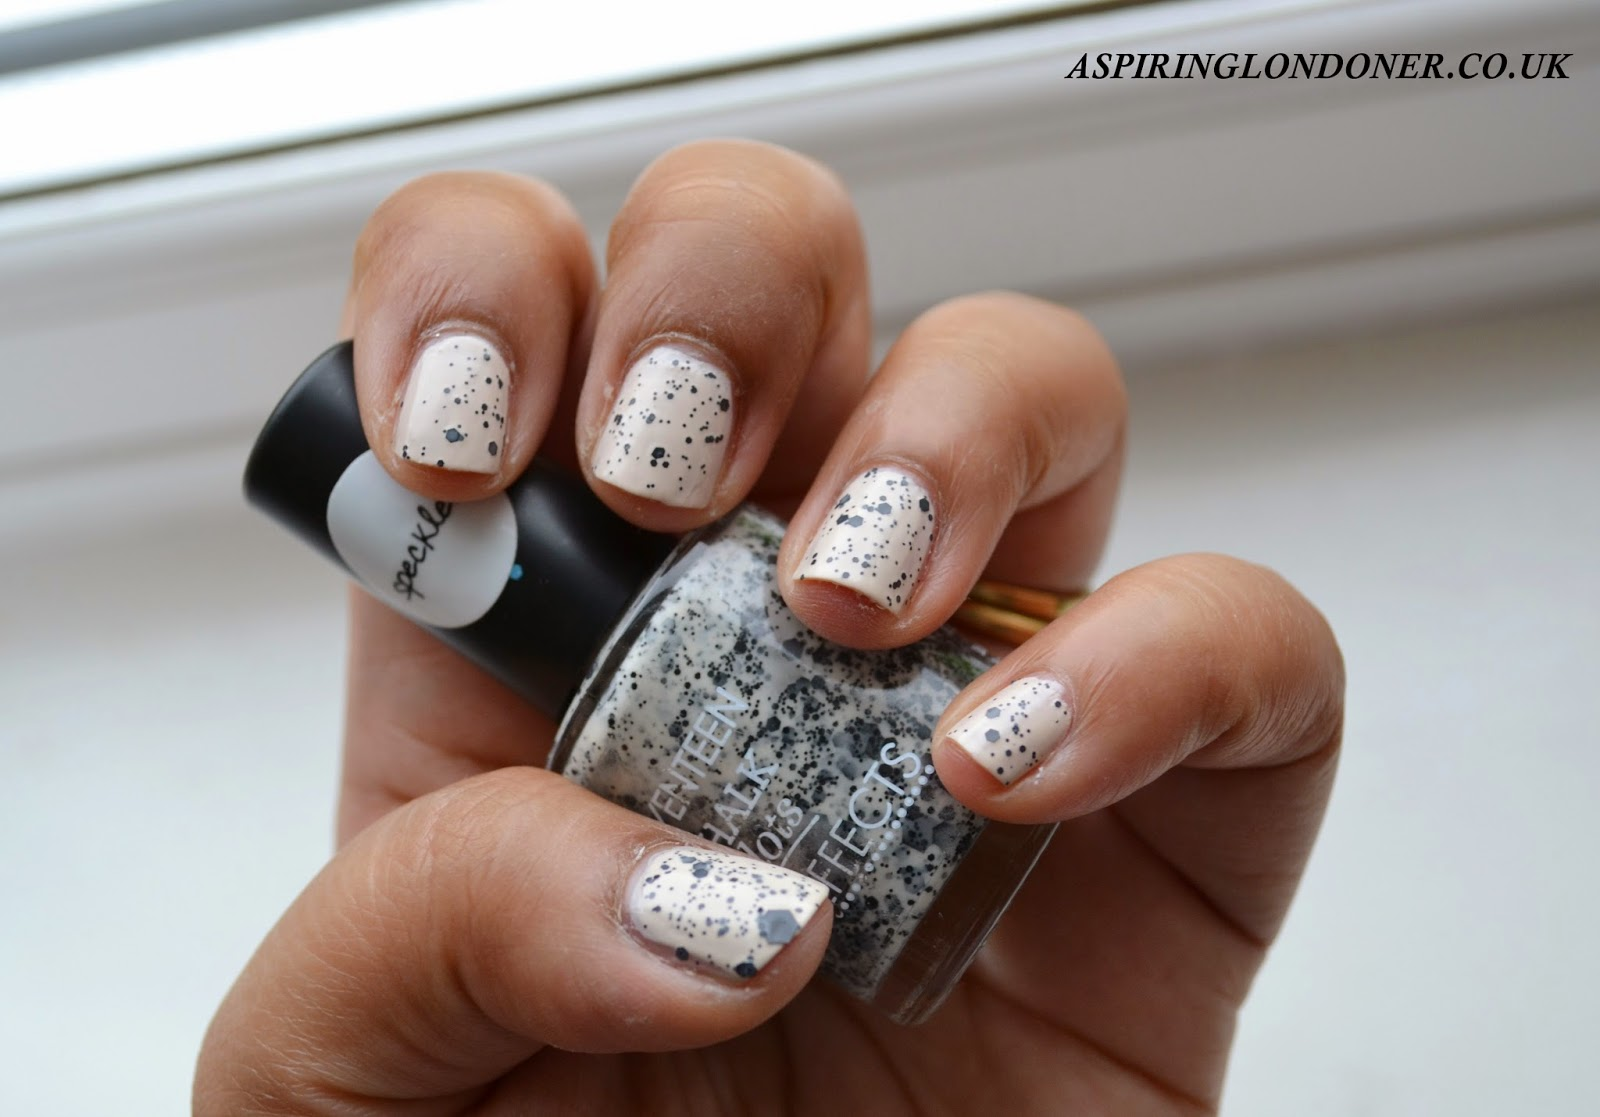 Seventeen Nail Effects Speckled Top Coat Limited Edition - Aspiring Londoner